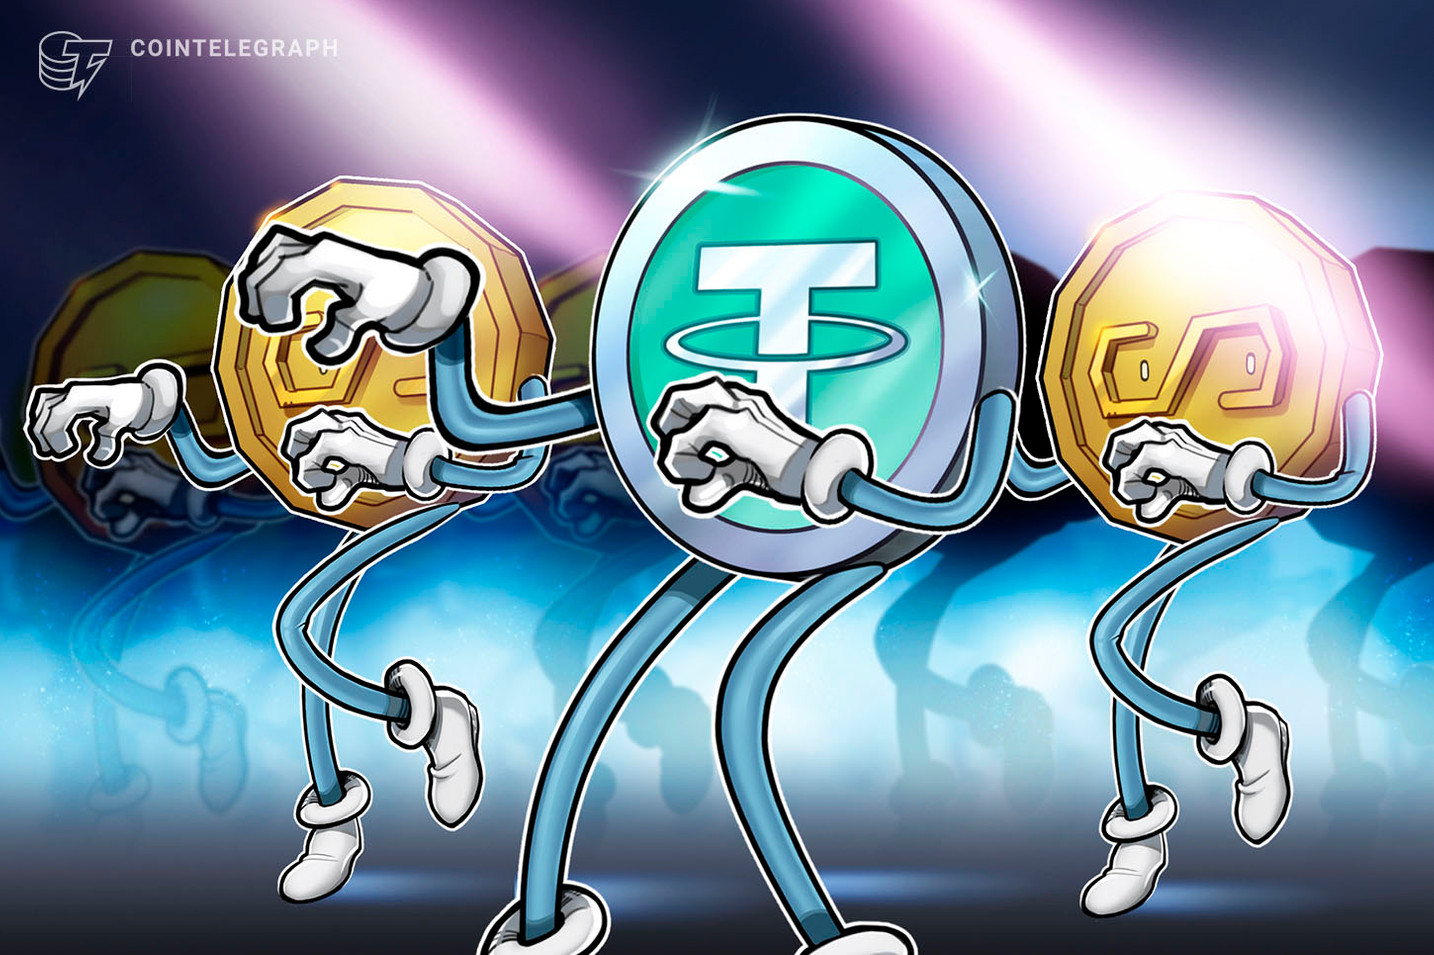 Tether Mulls Commodity-Backed Stablecoin to Cut Bank Risk: Report